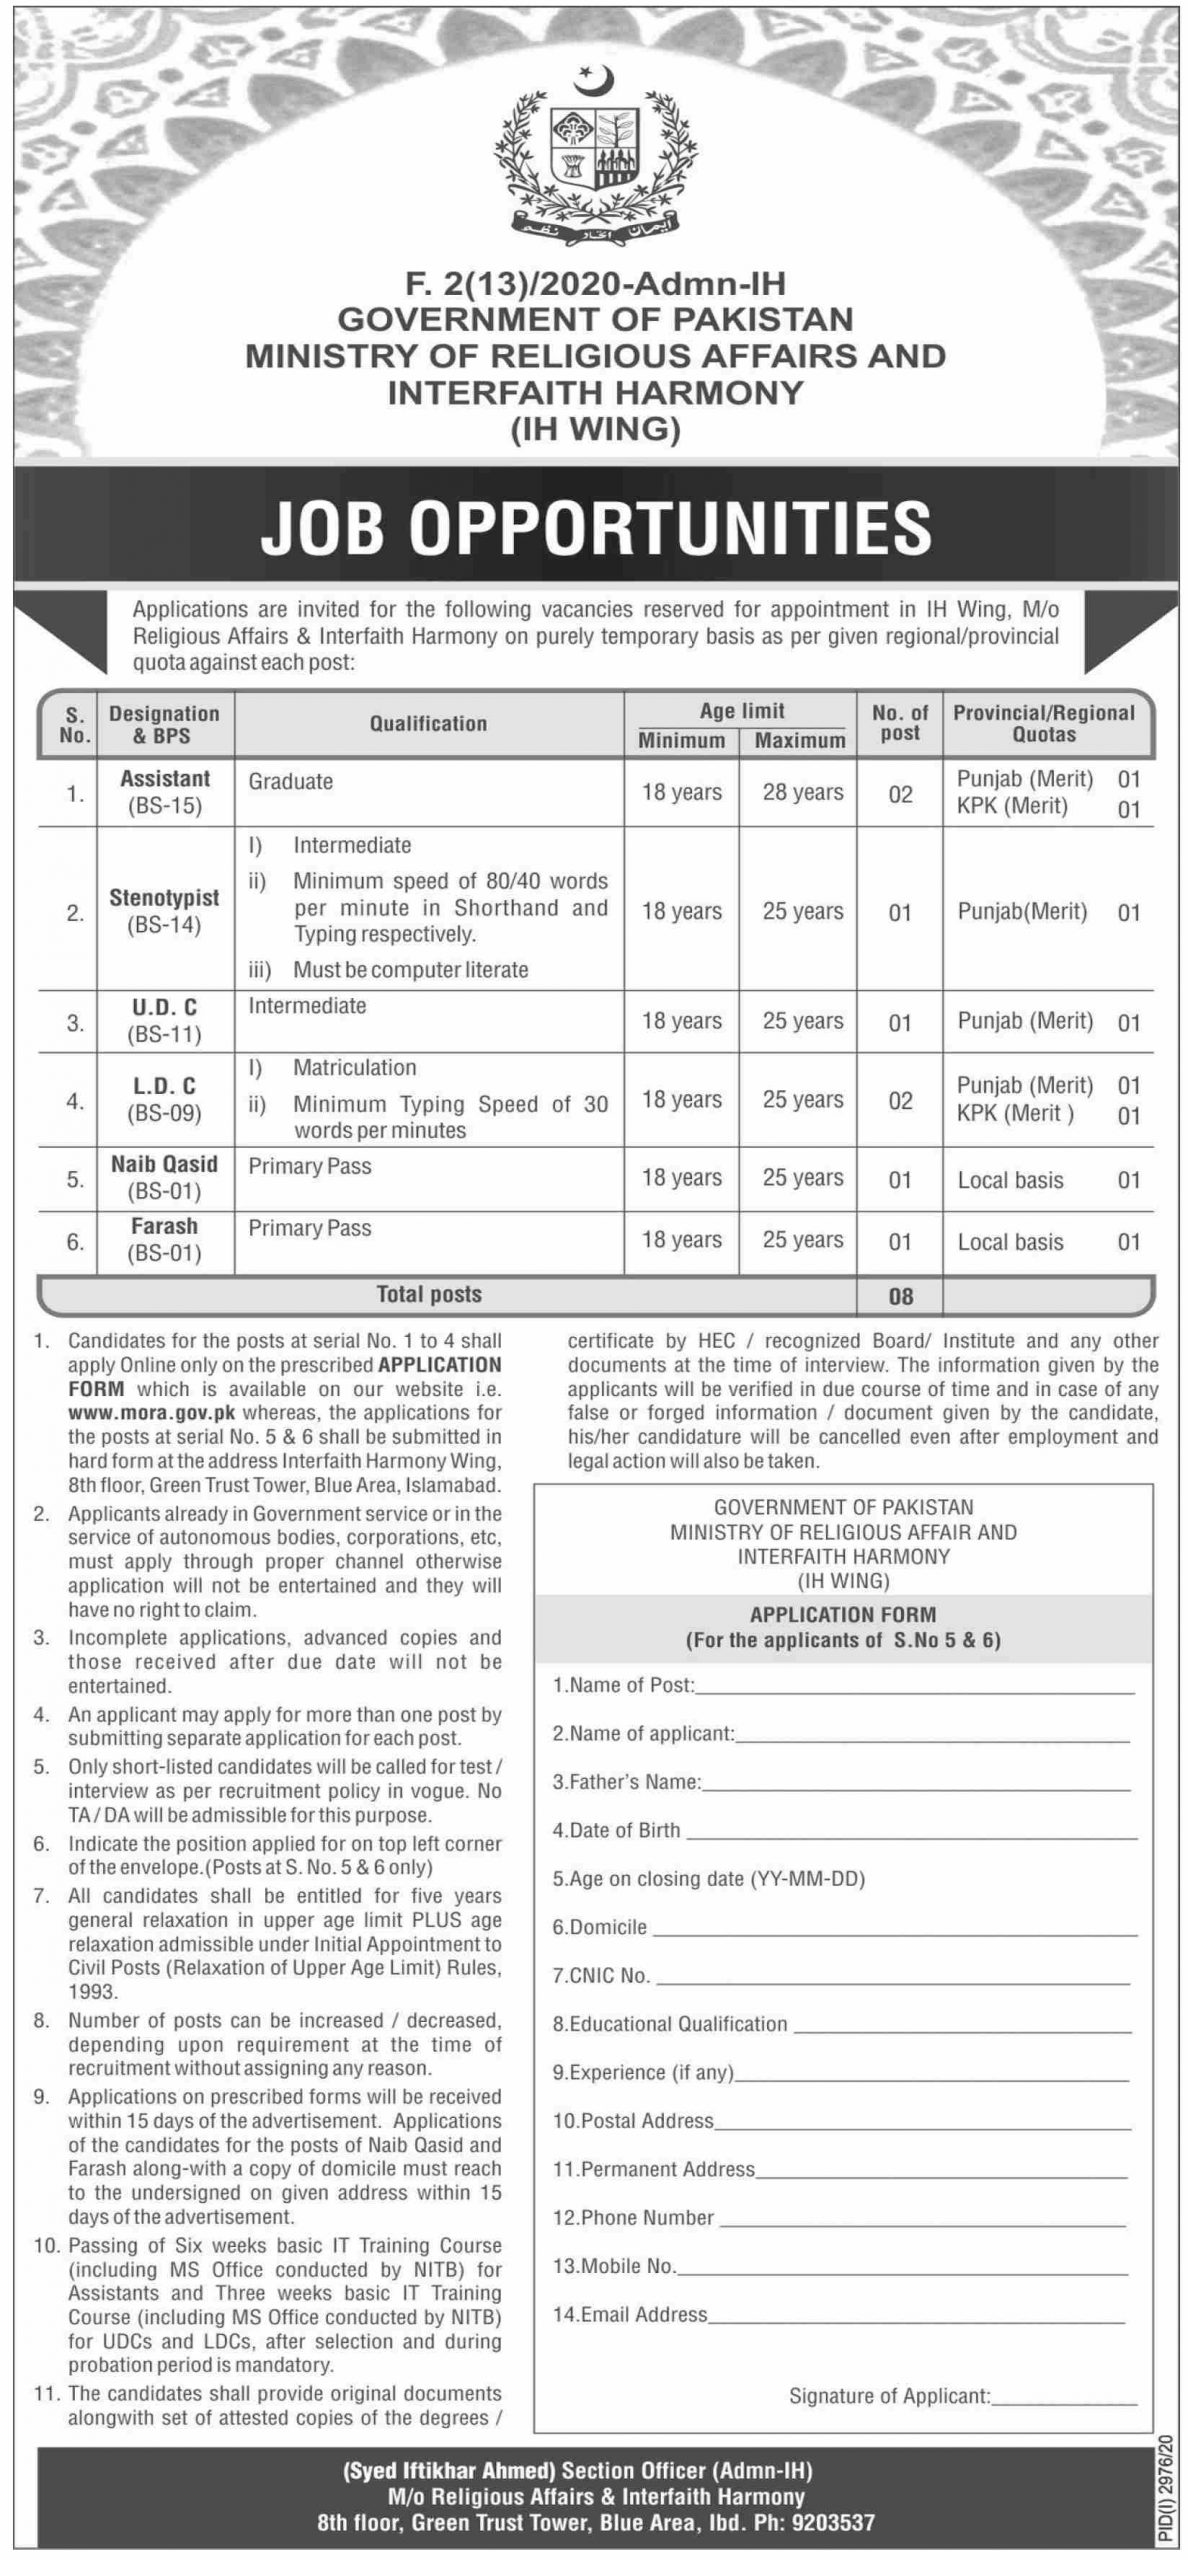 Govt of Pakistan Ministry of Religious Affairs and Interfaith Harmony Jobs December 2020